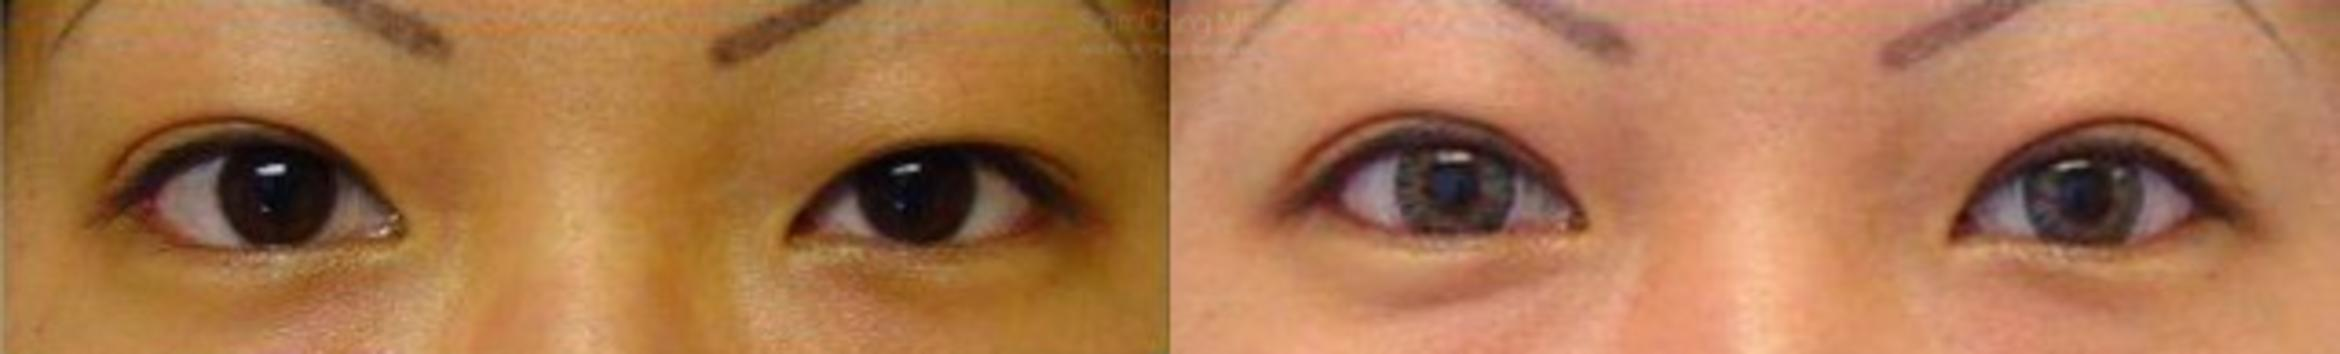 Asian Eyelid Case 5 Before & After View #1 | Honolulu, HI | Shim Ching, MD: Asia Pacific Plastic Surgery